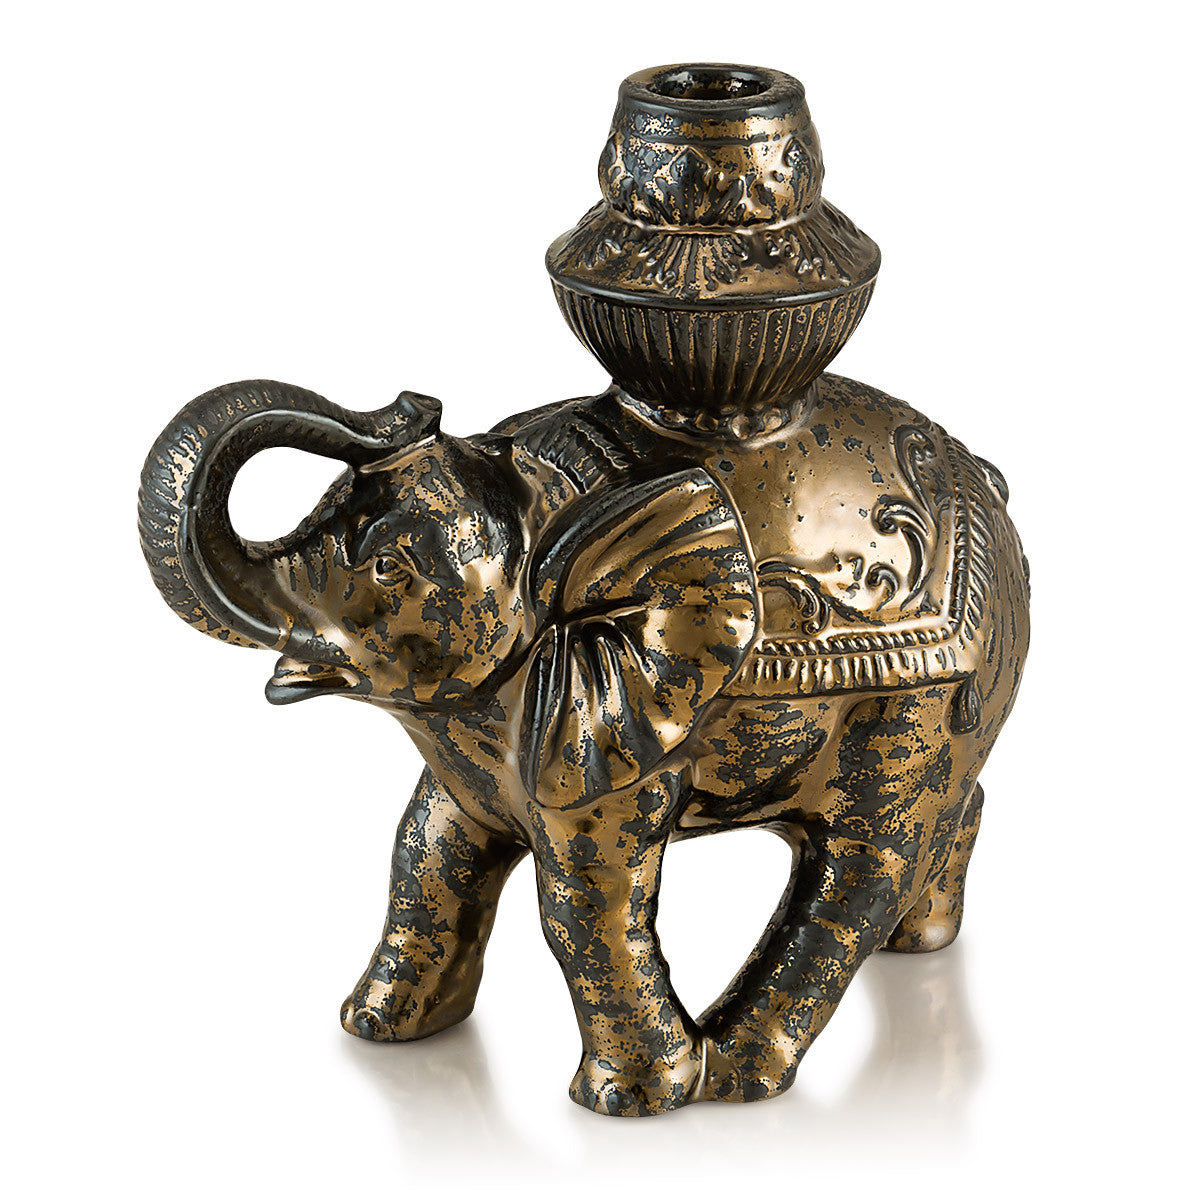 Ceramic elephant candle holder in burnished bronze finish